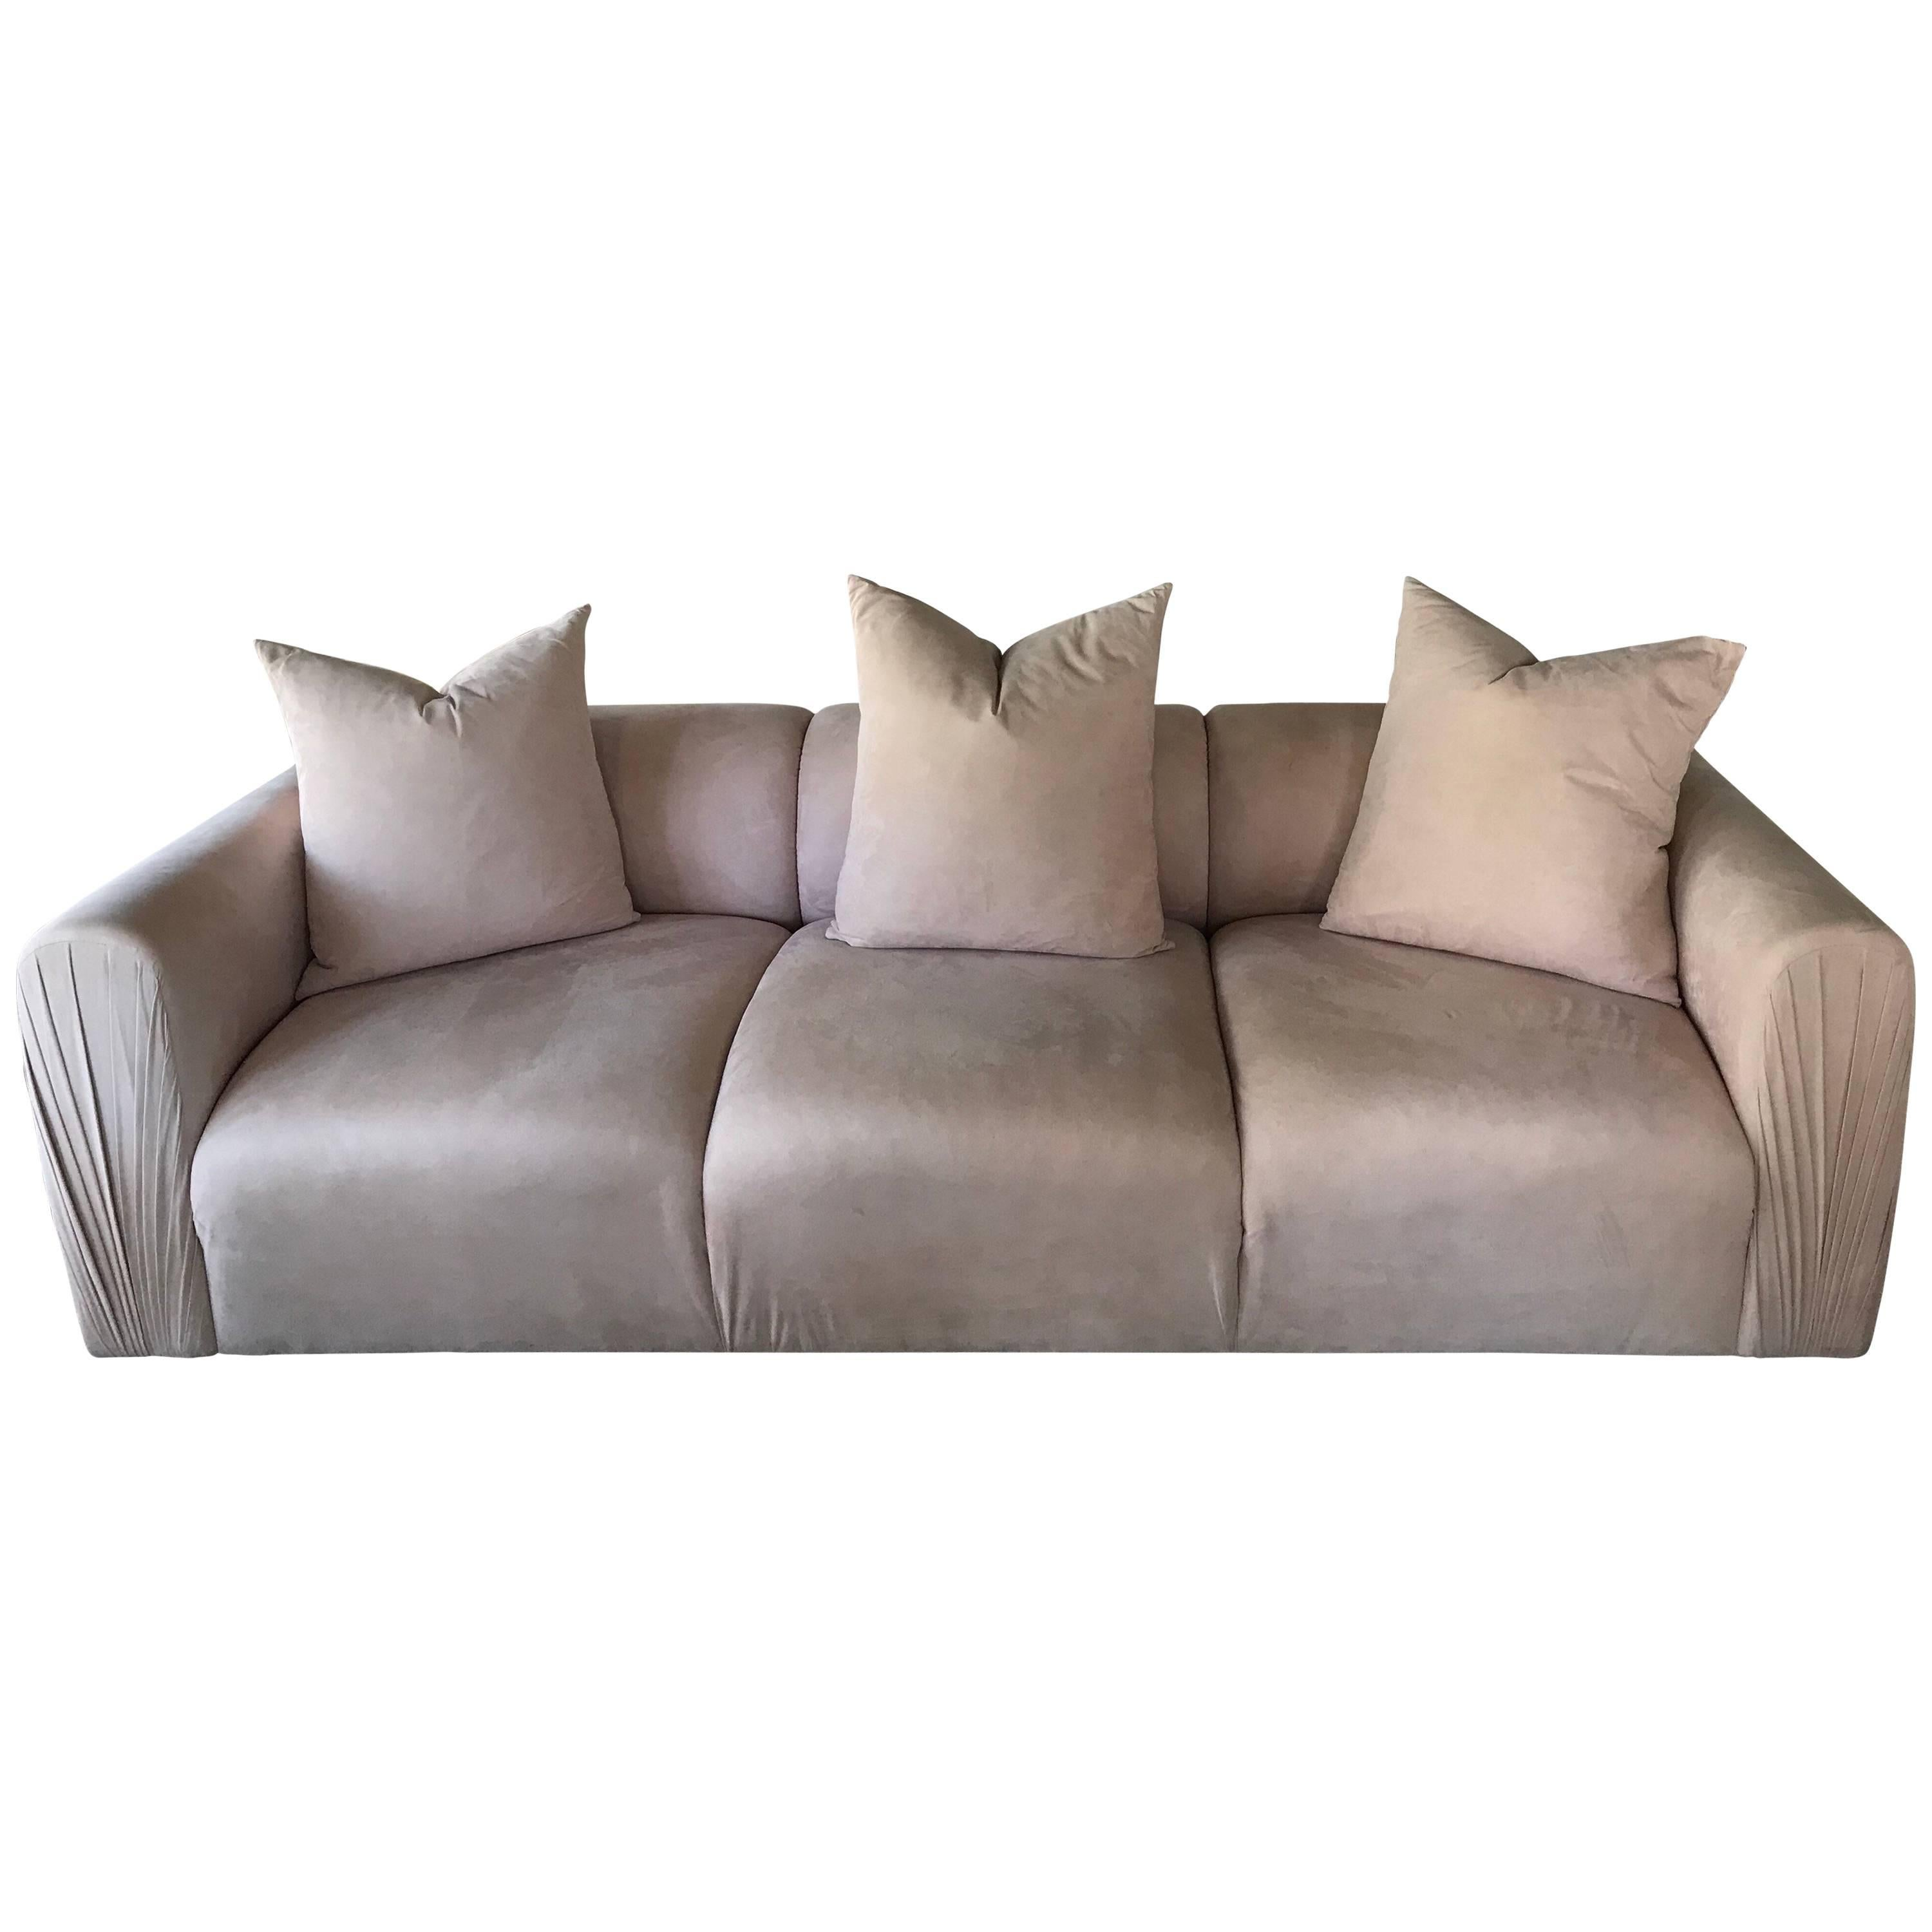 Blush ultra suede 80s modern ruched arm sofa with matching pillows for sale at 1stdibs